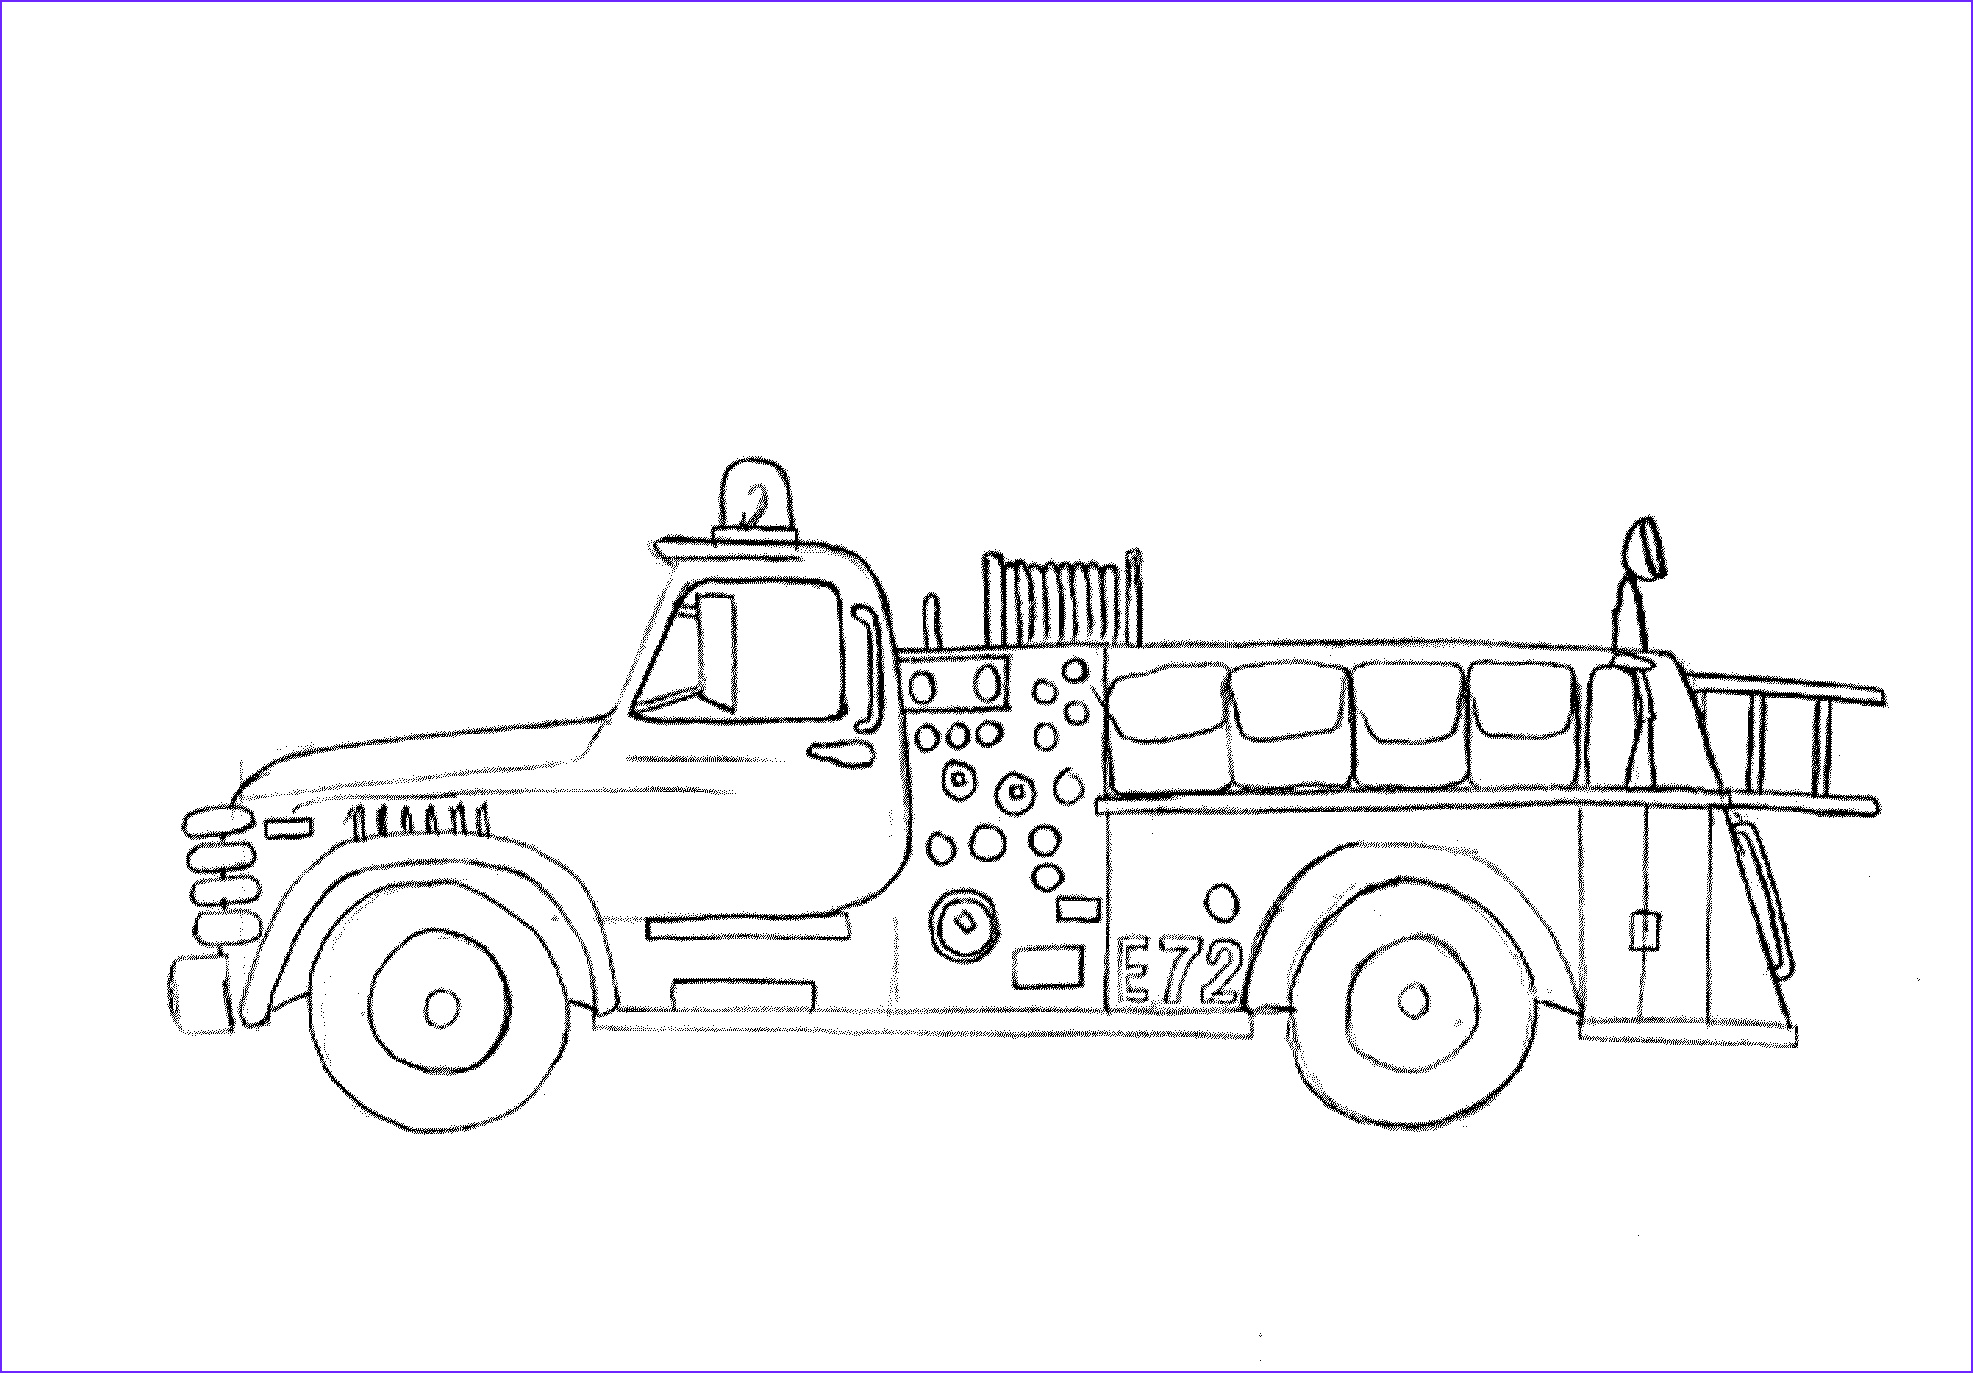 Fire Truck Coloring Pages Best Of Stock Print & Download Educational Fire Truck Coloring Pages